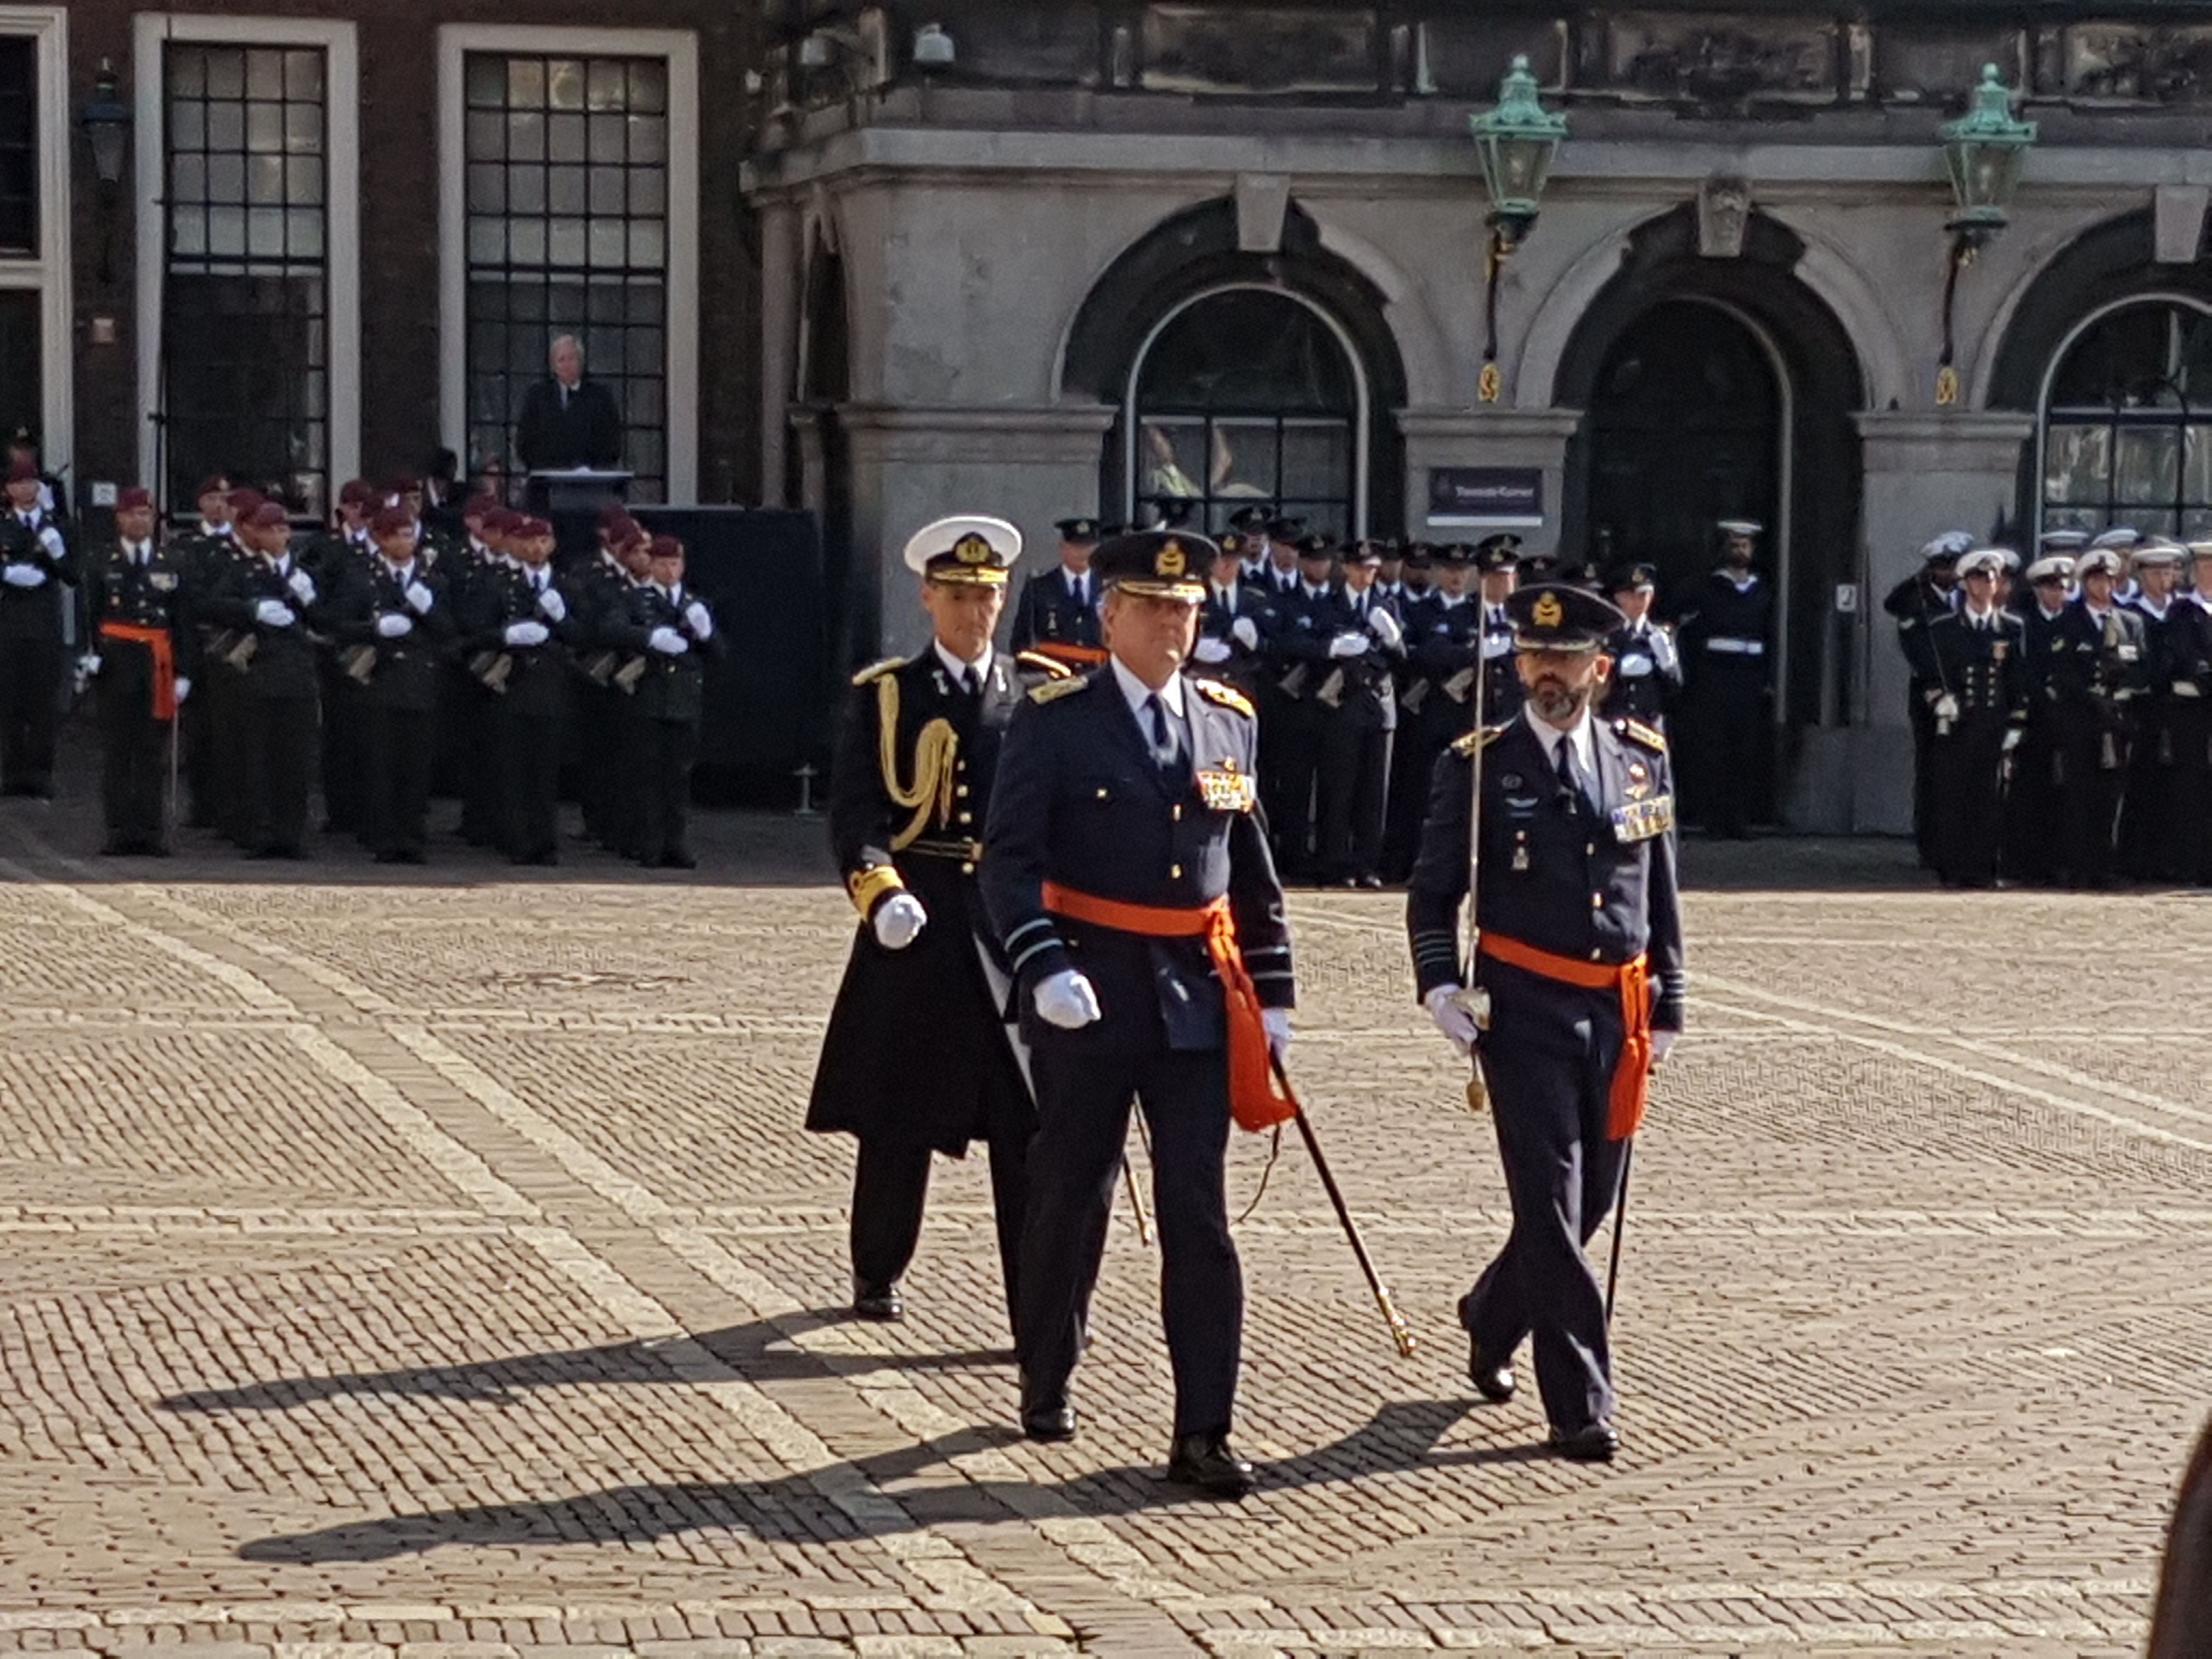 De Koning in Luchtmacht uniform